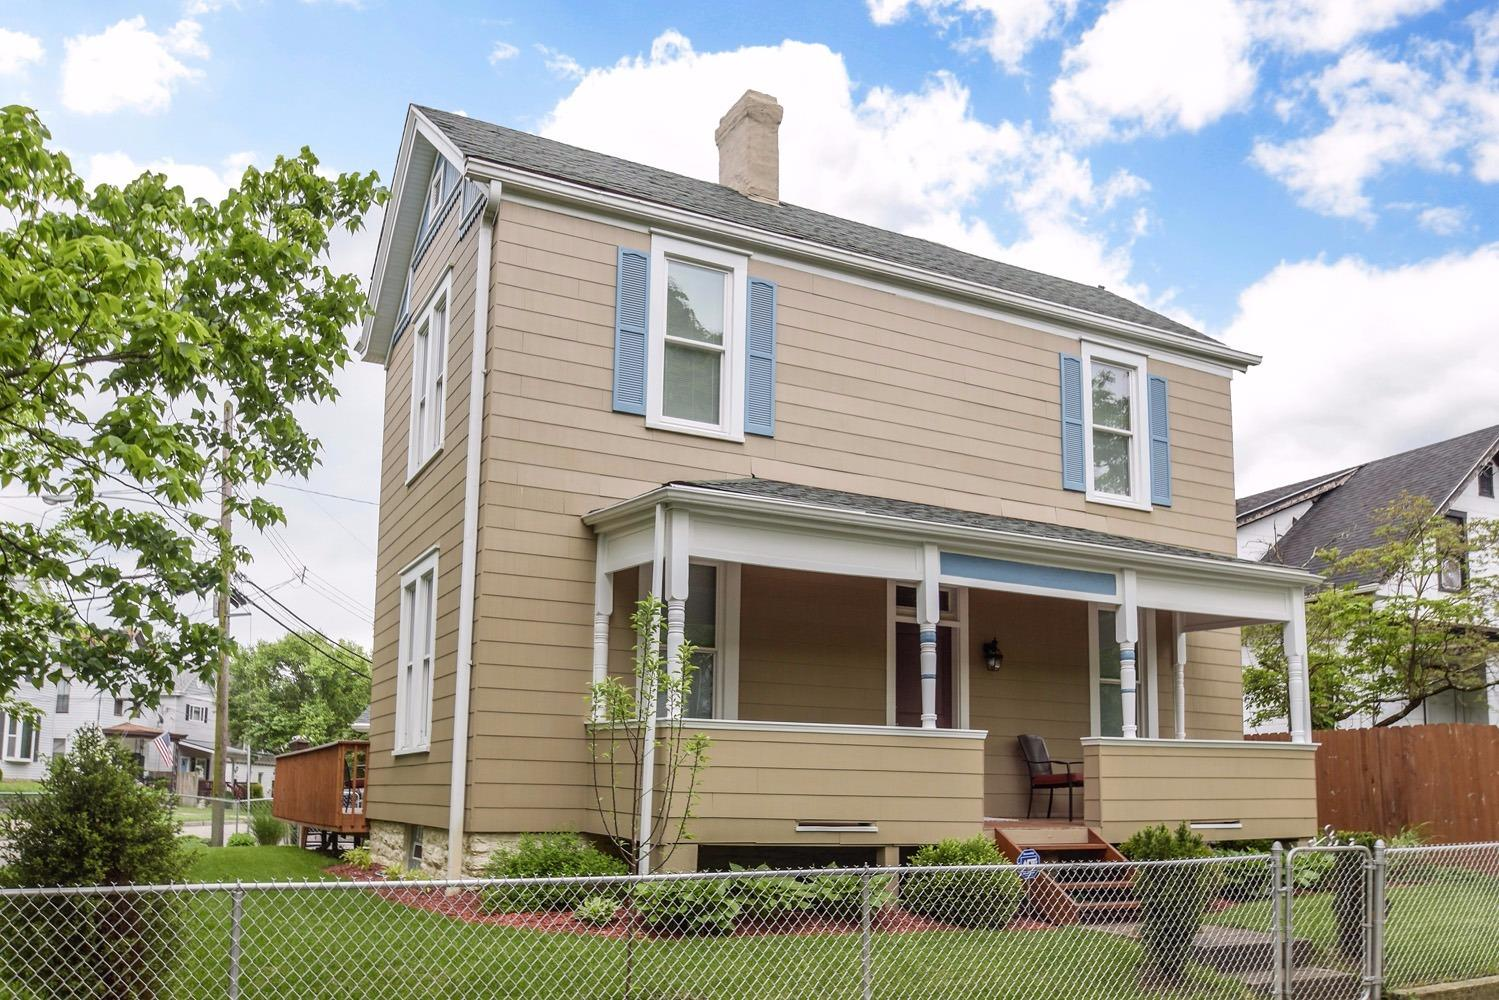 4855 Greenwood Ter Linwood, OH